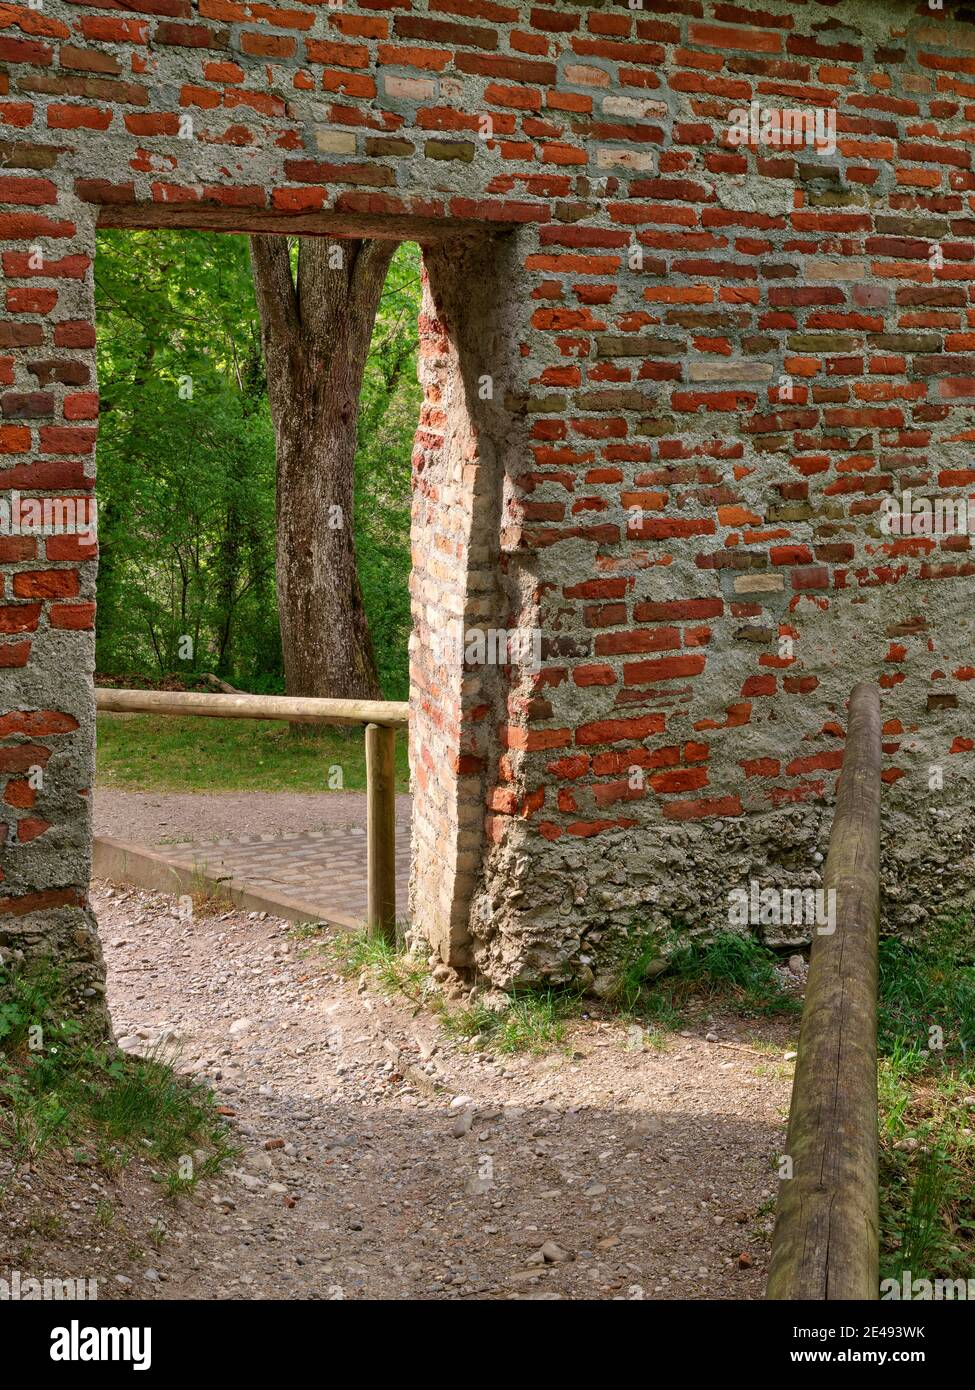 City wall, wall, brick wall, brick, path, gravel path, spring morning, old town, monument, place of interest, historical building, historical old town, listed, monument protection Stock Photo